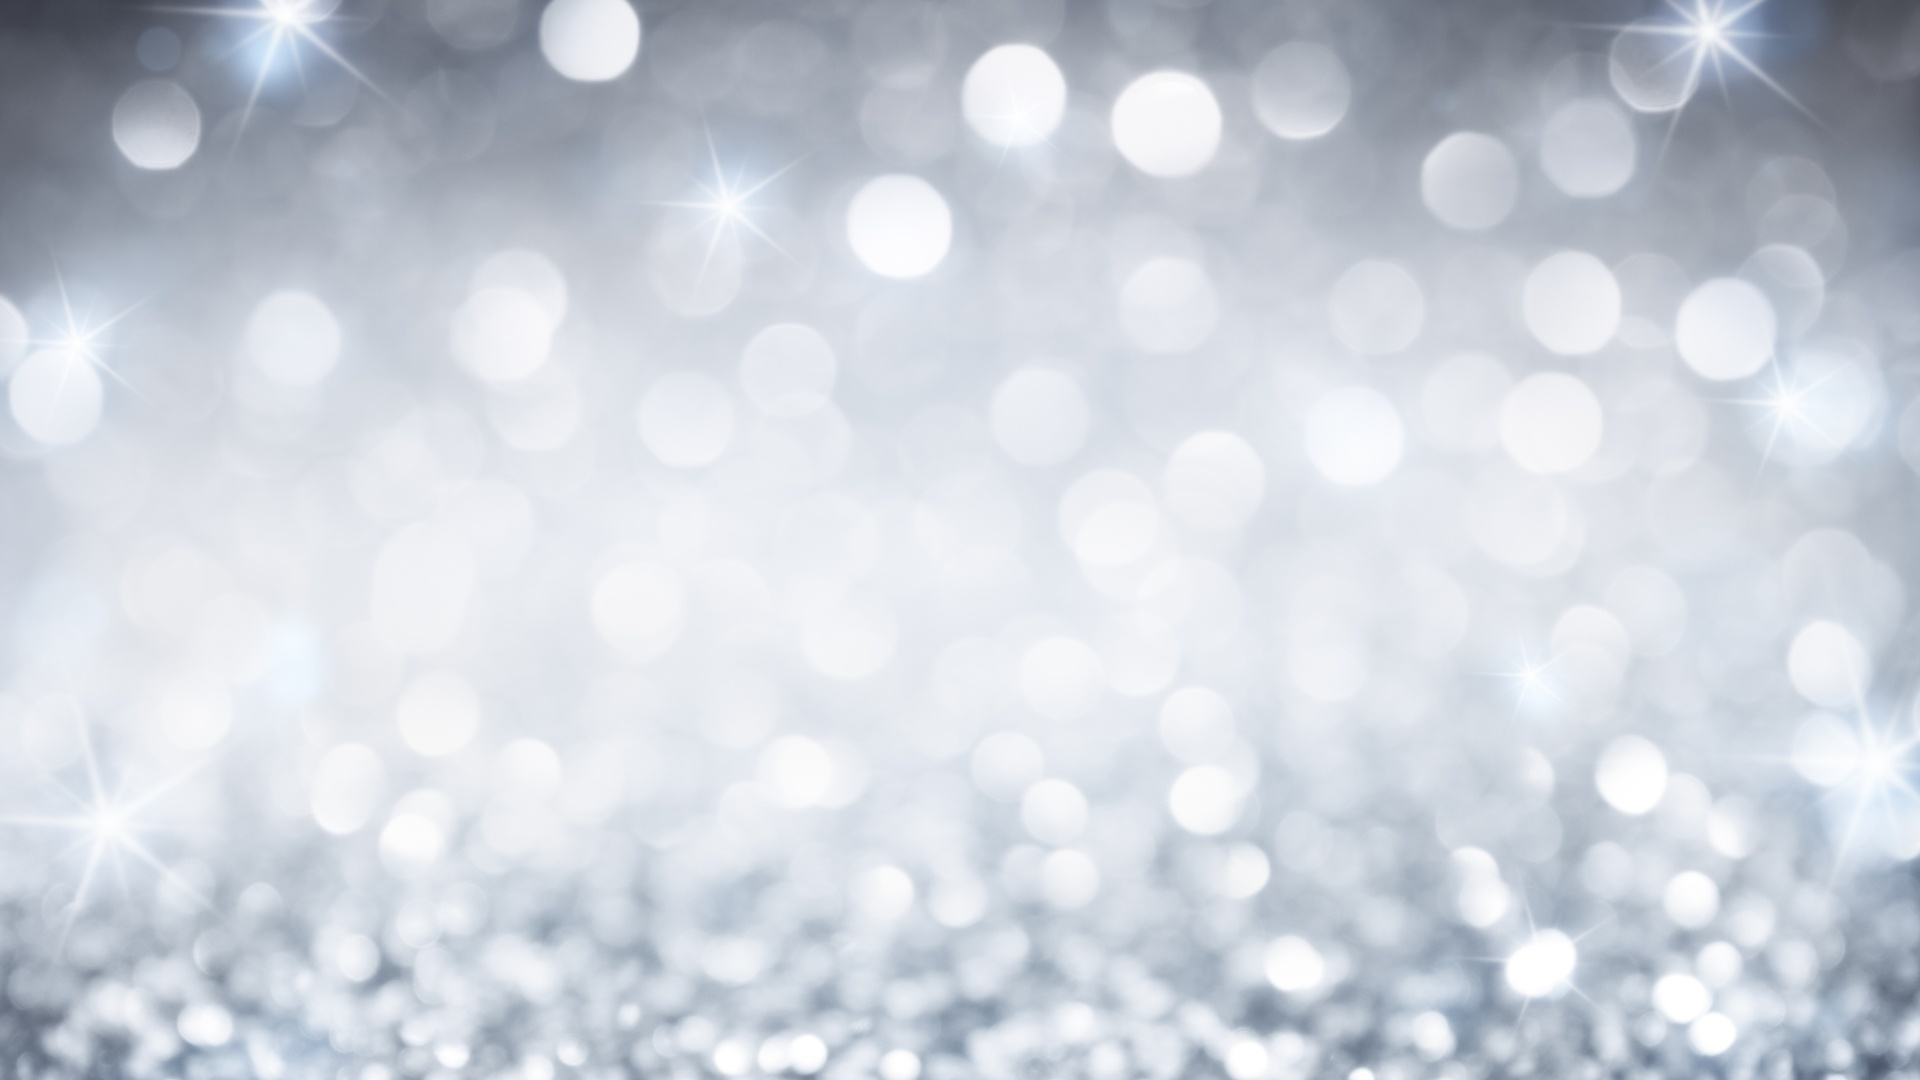 Moving glitter backgrounds